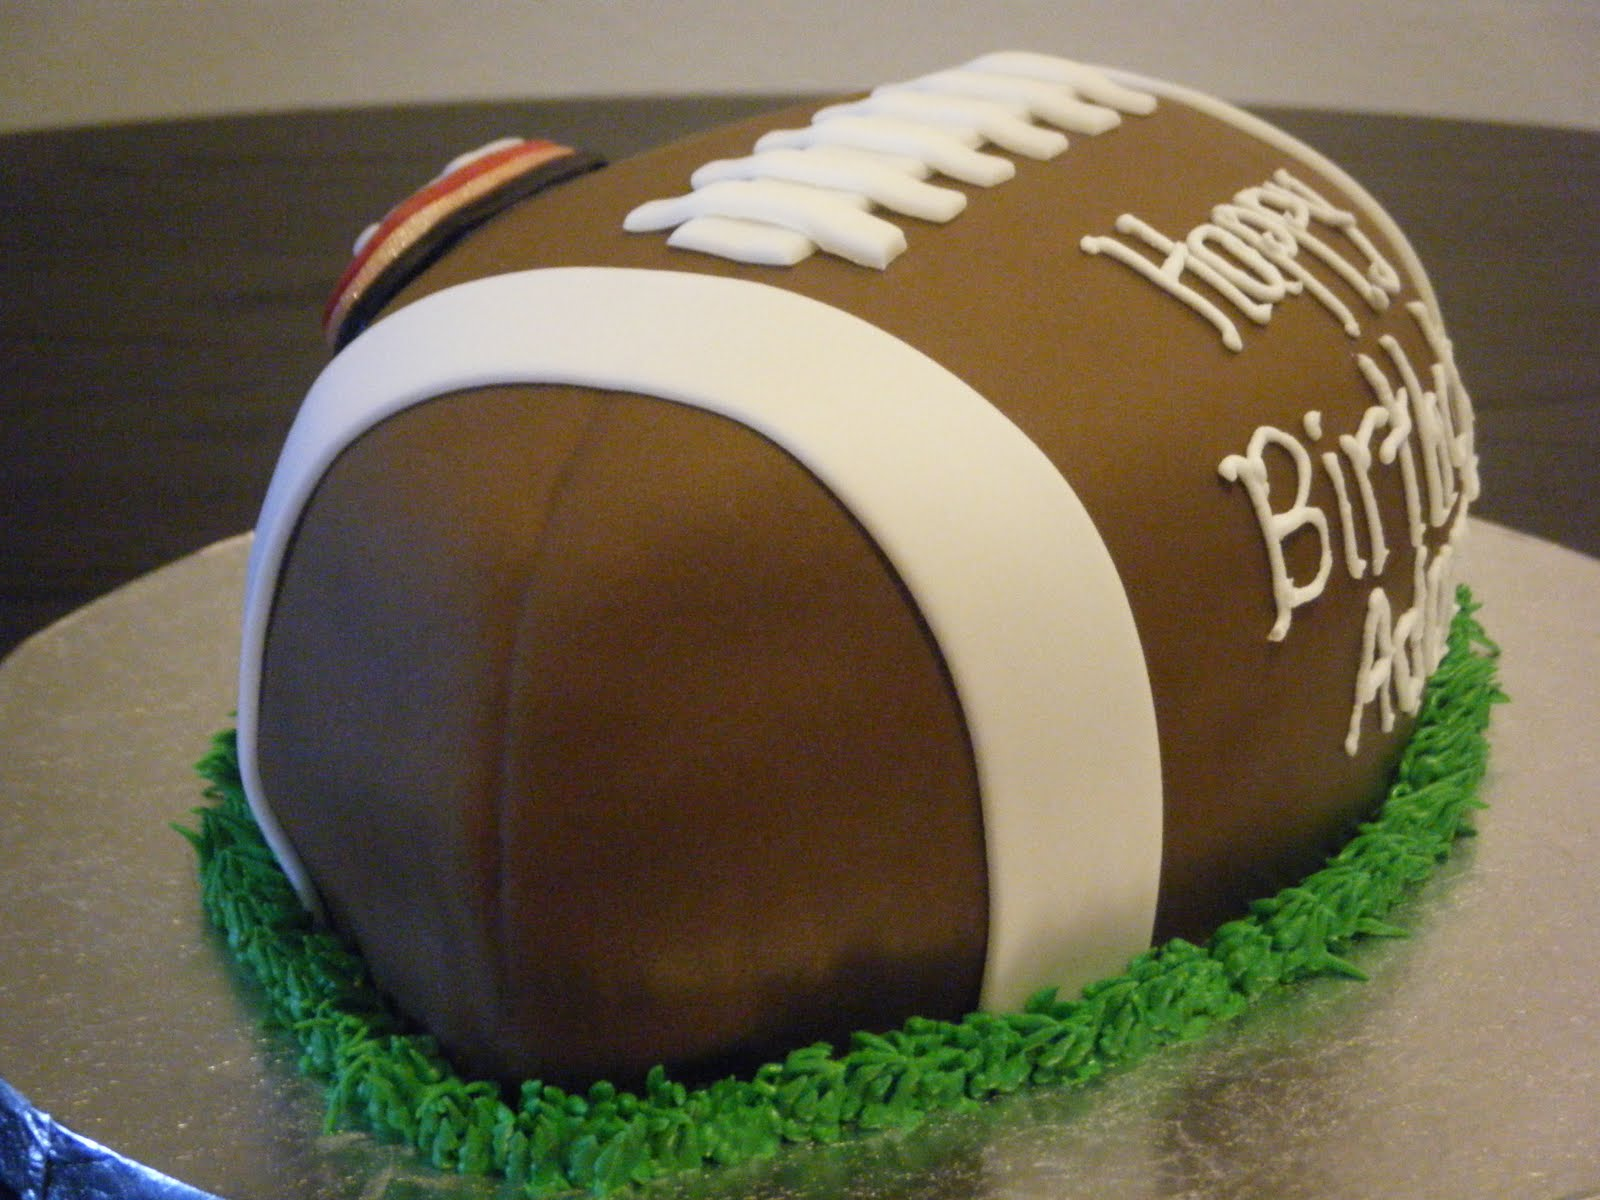 Cakessica Football Cake 49ers